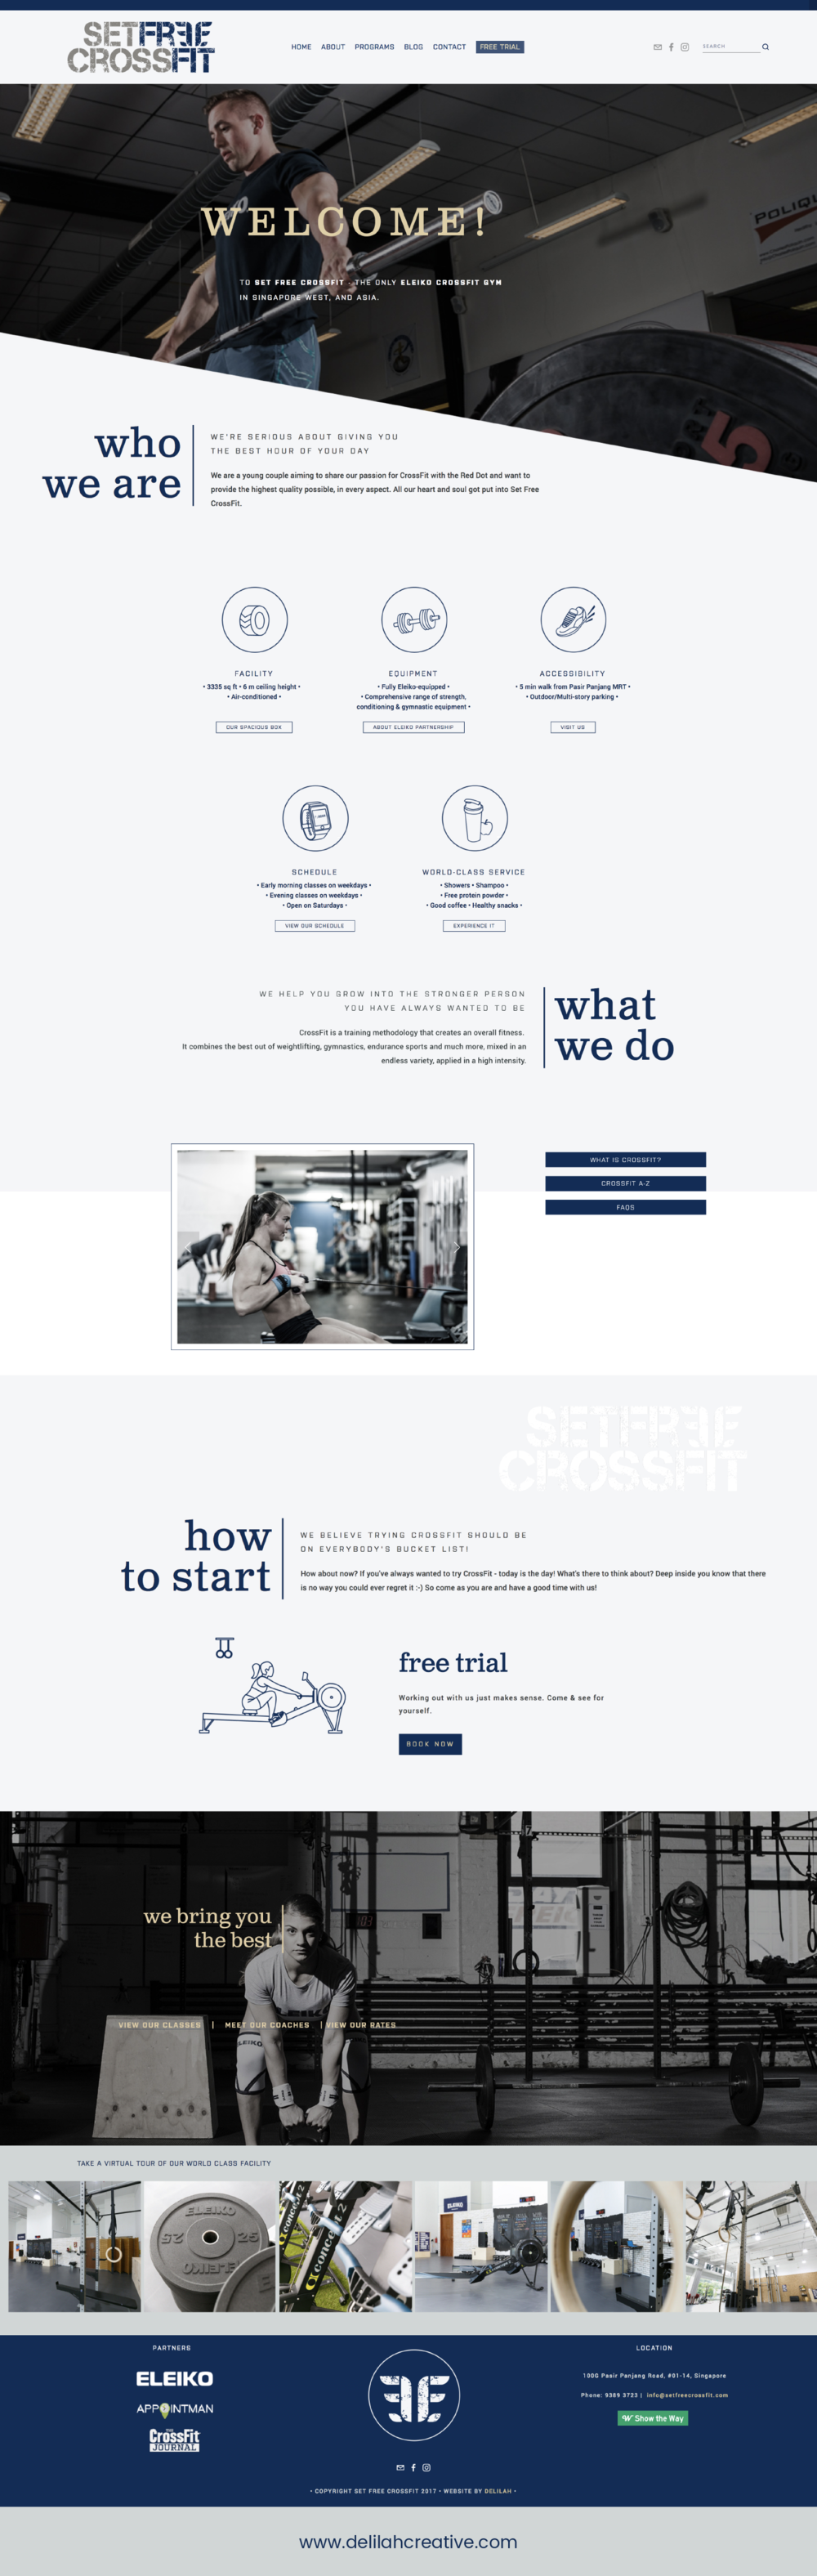 Squarespace Website for Crossfit Box - Delilah Creative